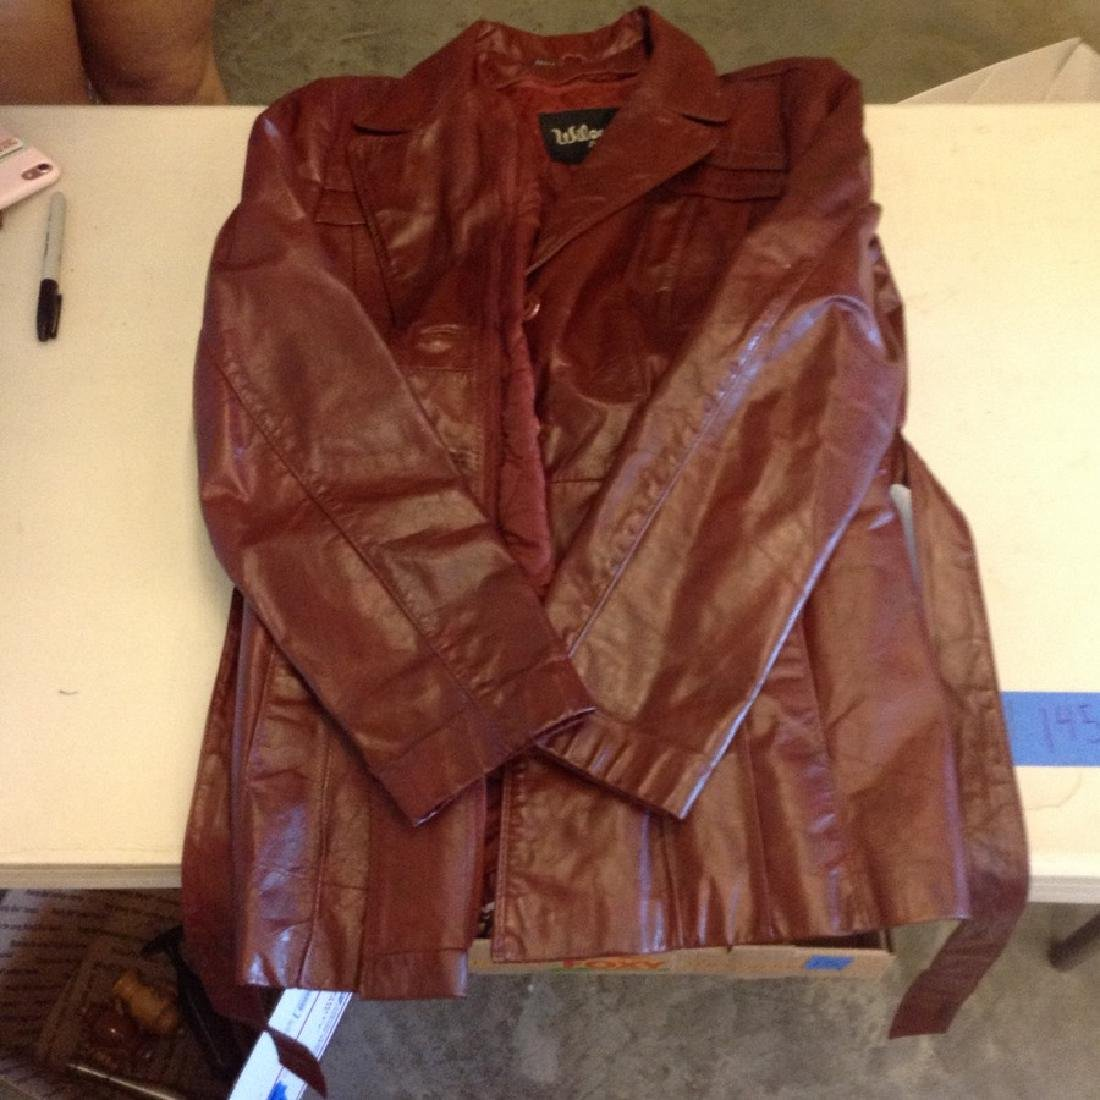 91fba910a31 For Auction: Wilson's size 14 leather jacket (#138) on Aug 05, 2019 |  Emanon Auctions and Estate Sales in NJ